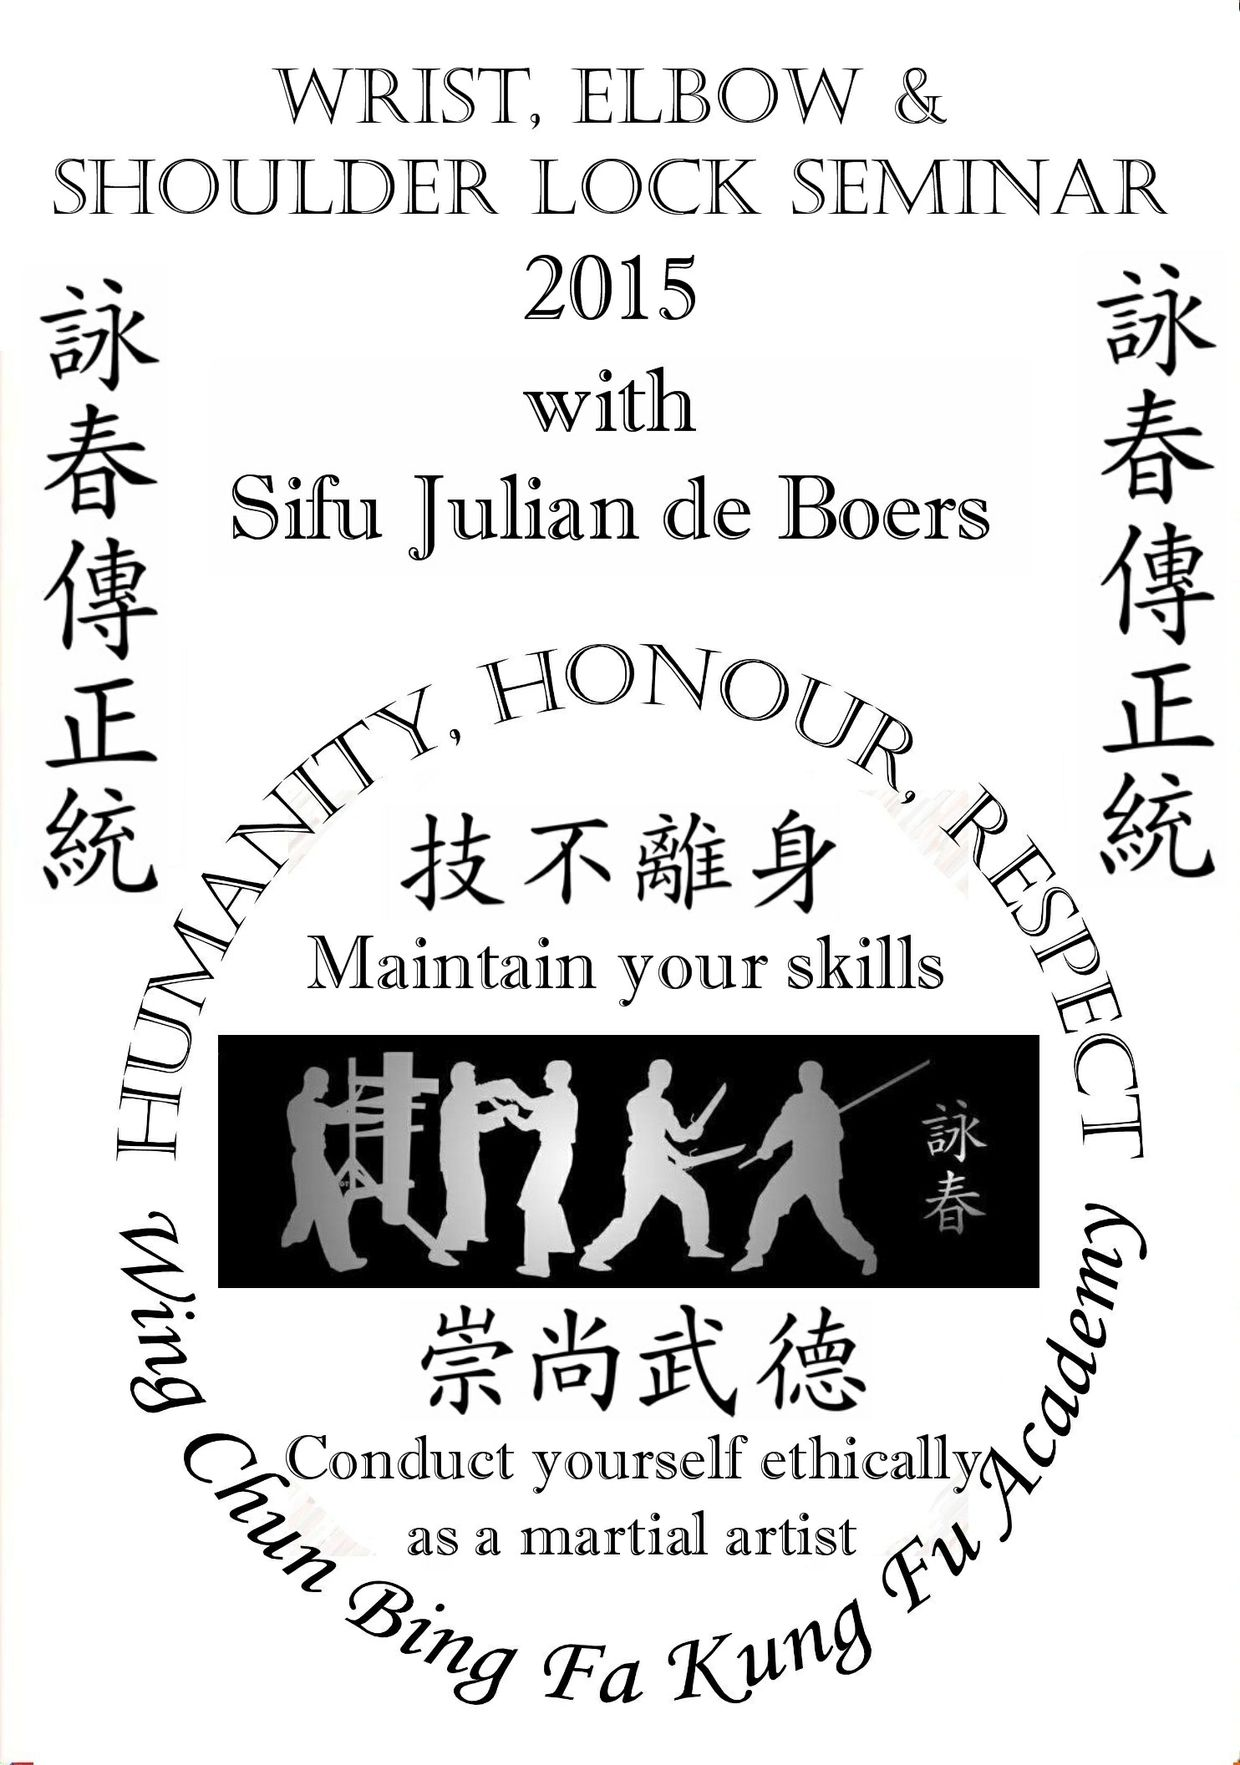 Wrist, Elbow & Shoulder Lock Seminar 2015